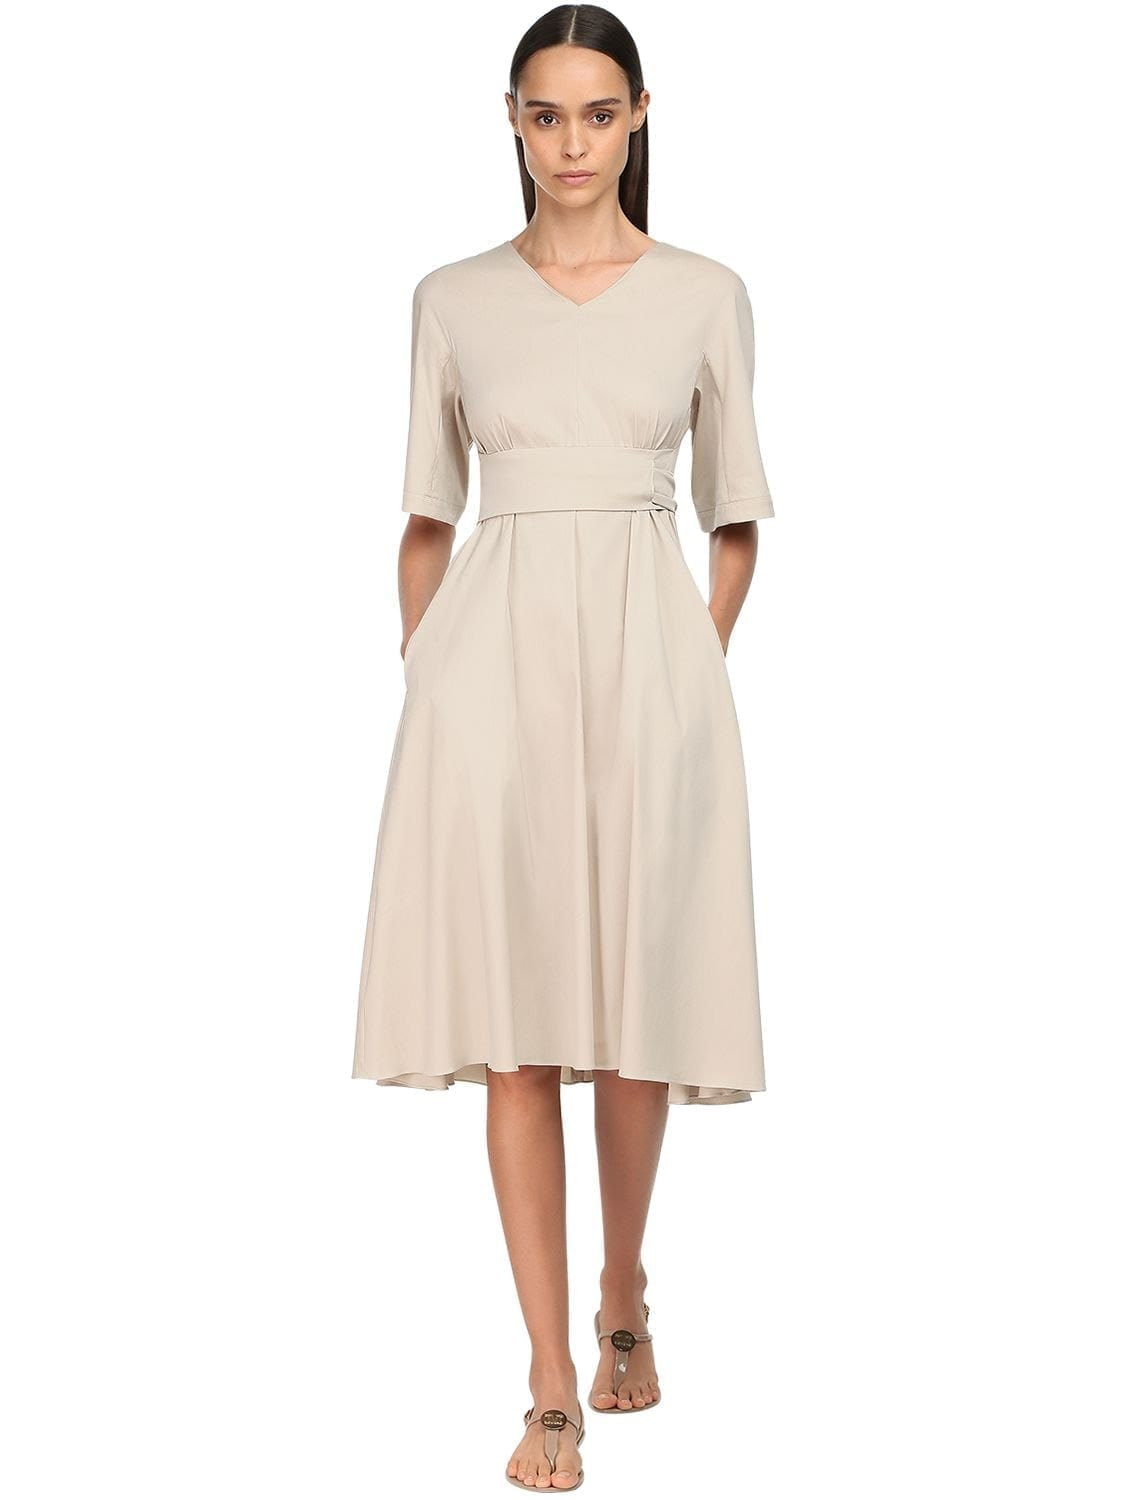 MAX MARA 'S Stretch Cotton Blend Dress